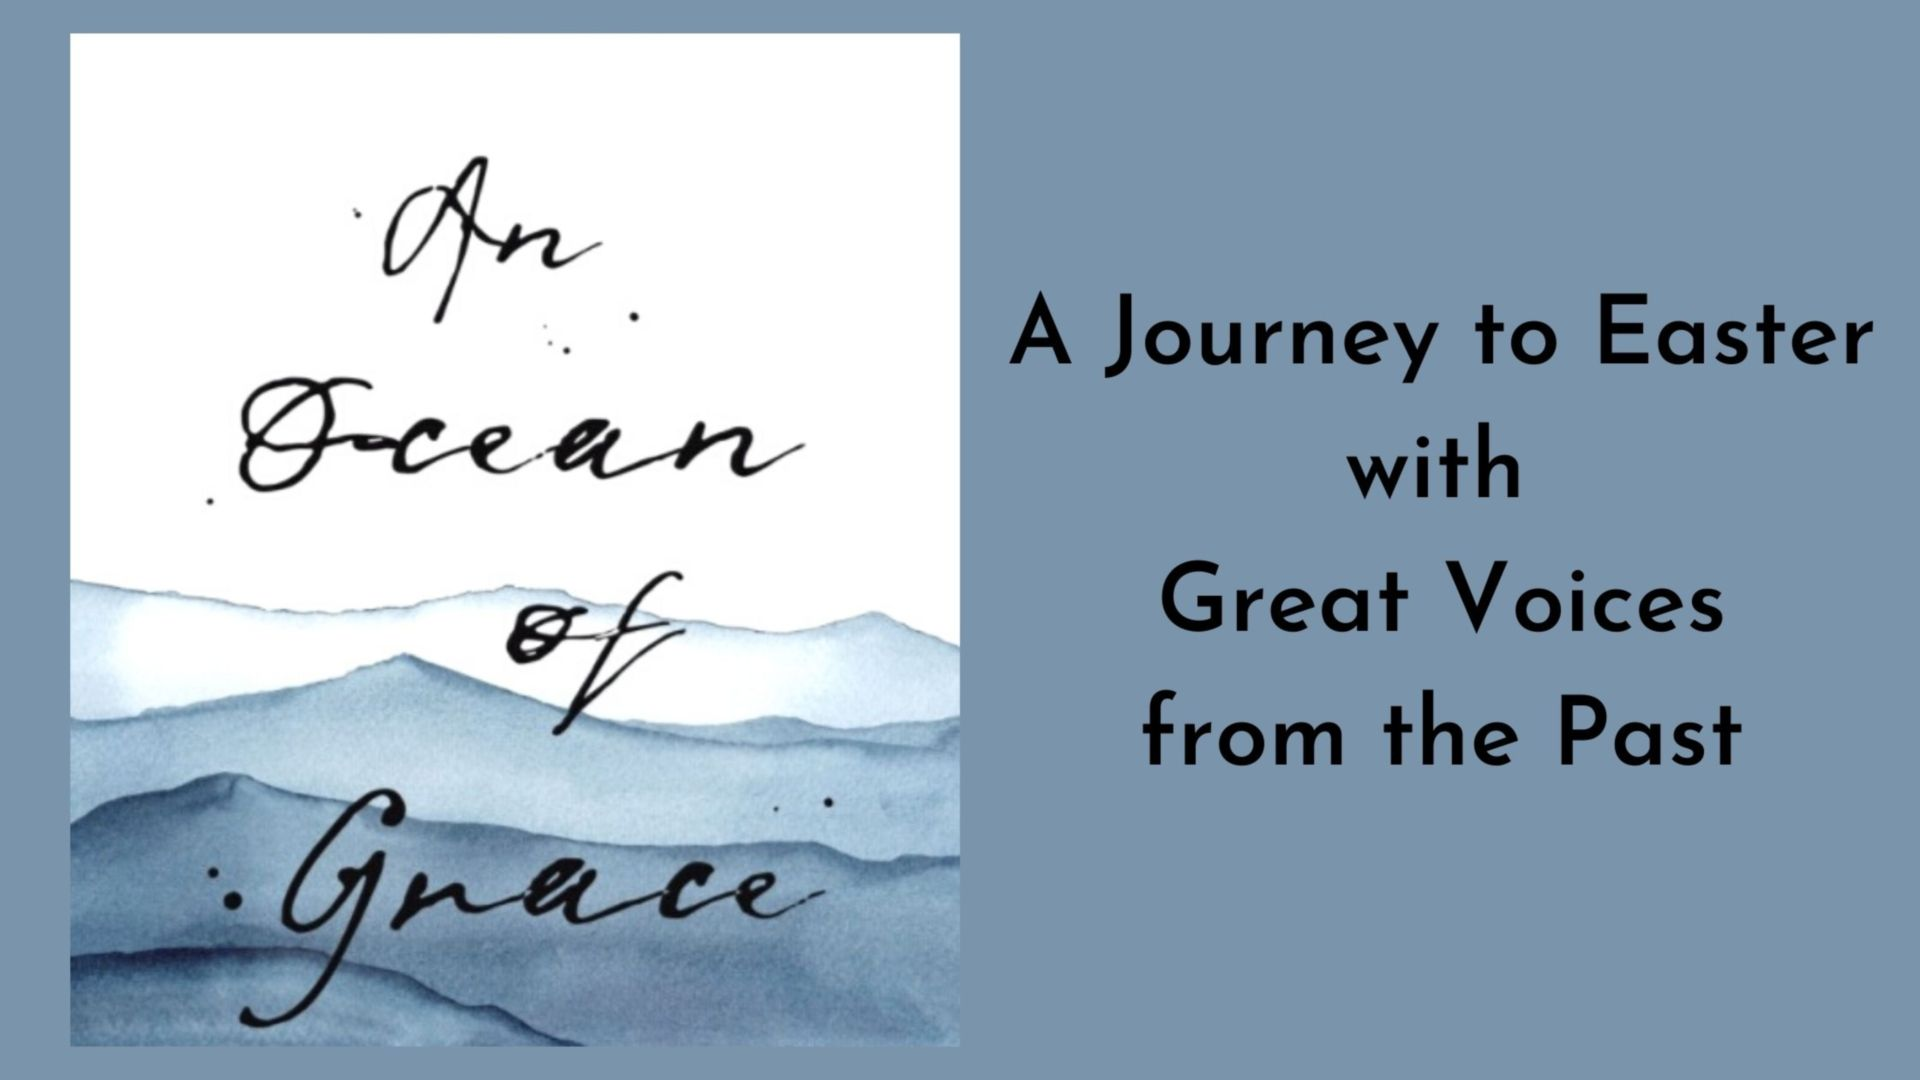 An Ocean of Grace - a new book by Tim Chester